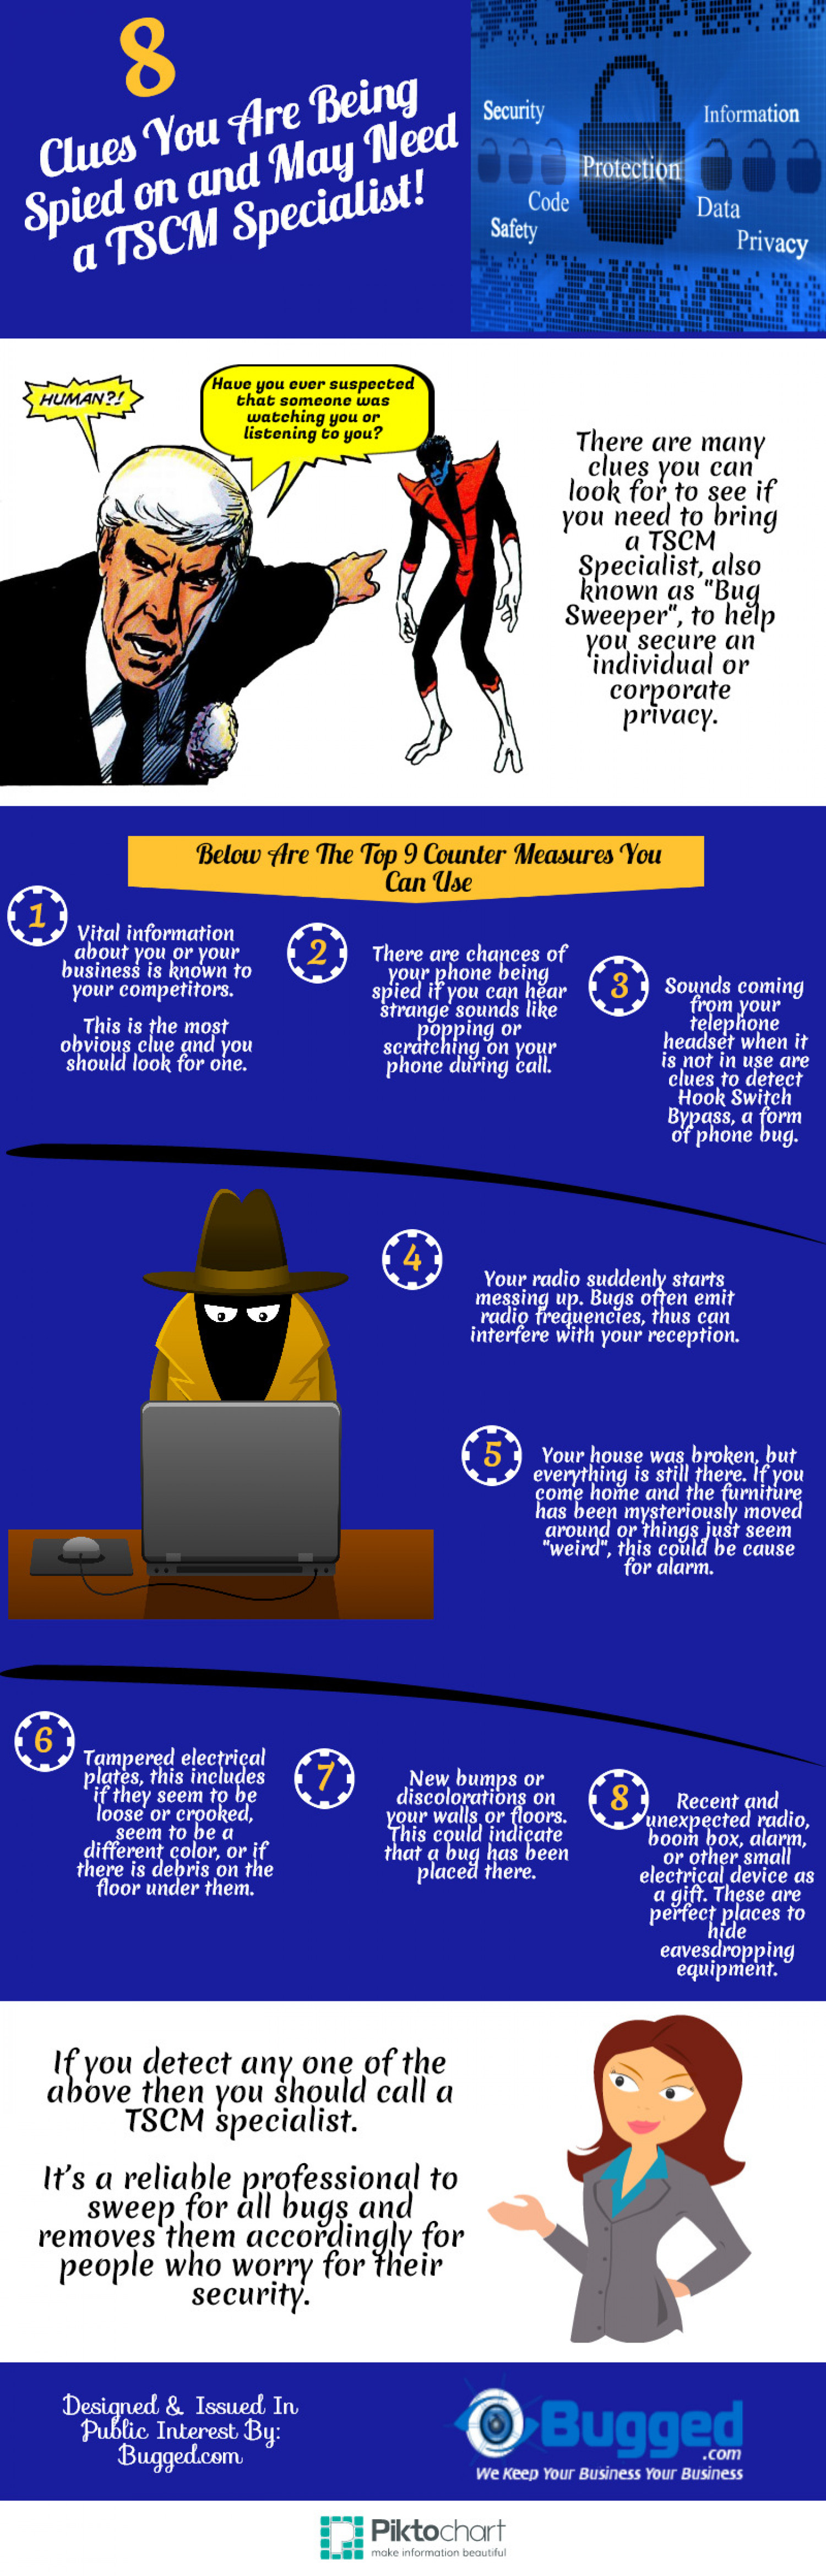 8 Clues You Are Being Spied on and May Need a TSCM Specialist! Infographic